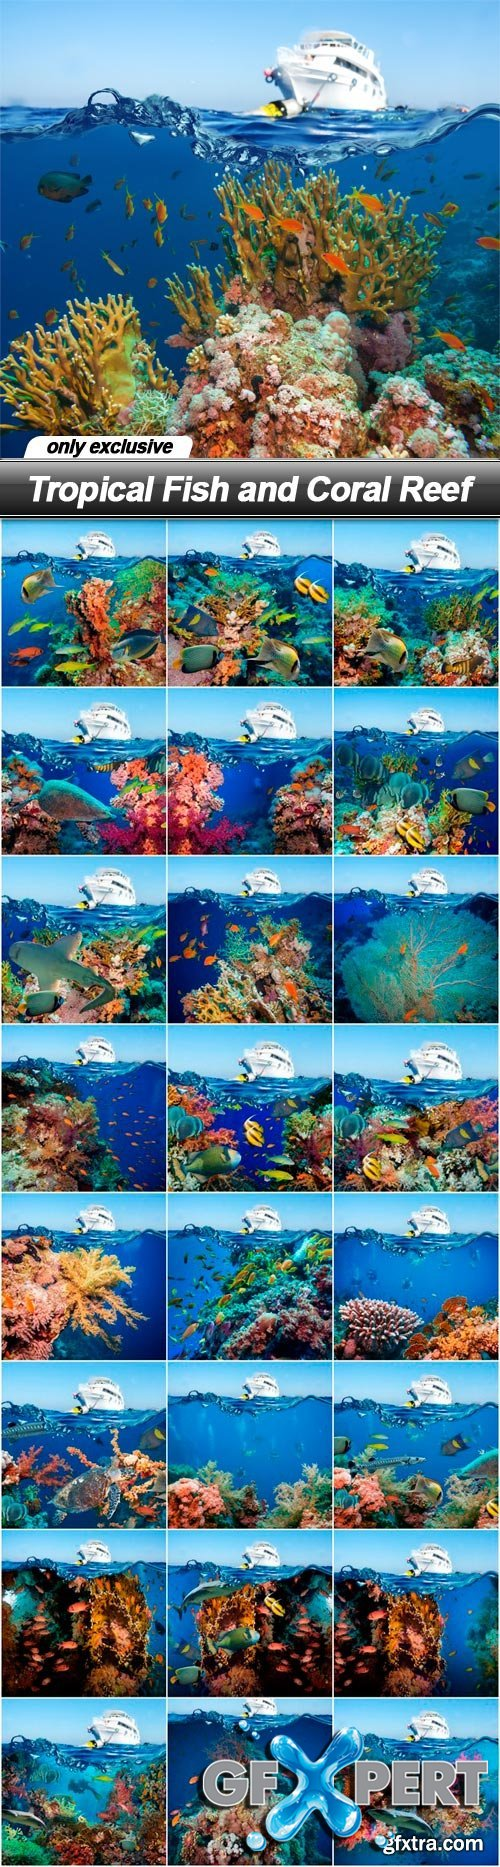 Tropical Fish and Coral Reef - 25 UHQ JPEG